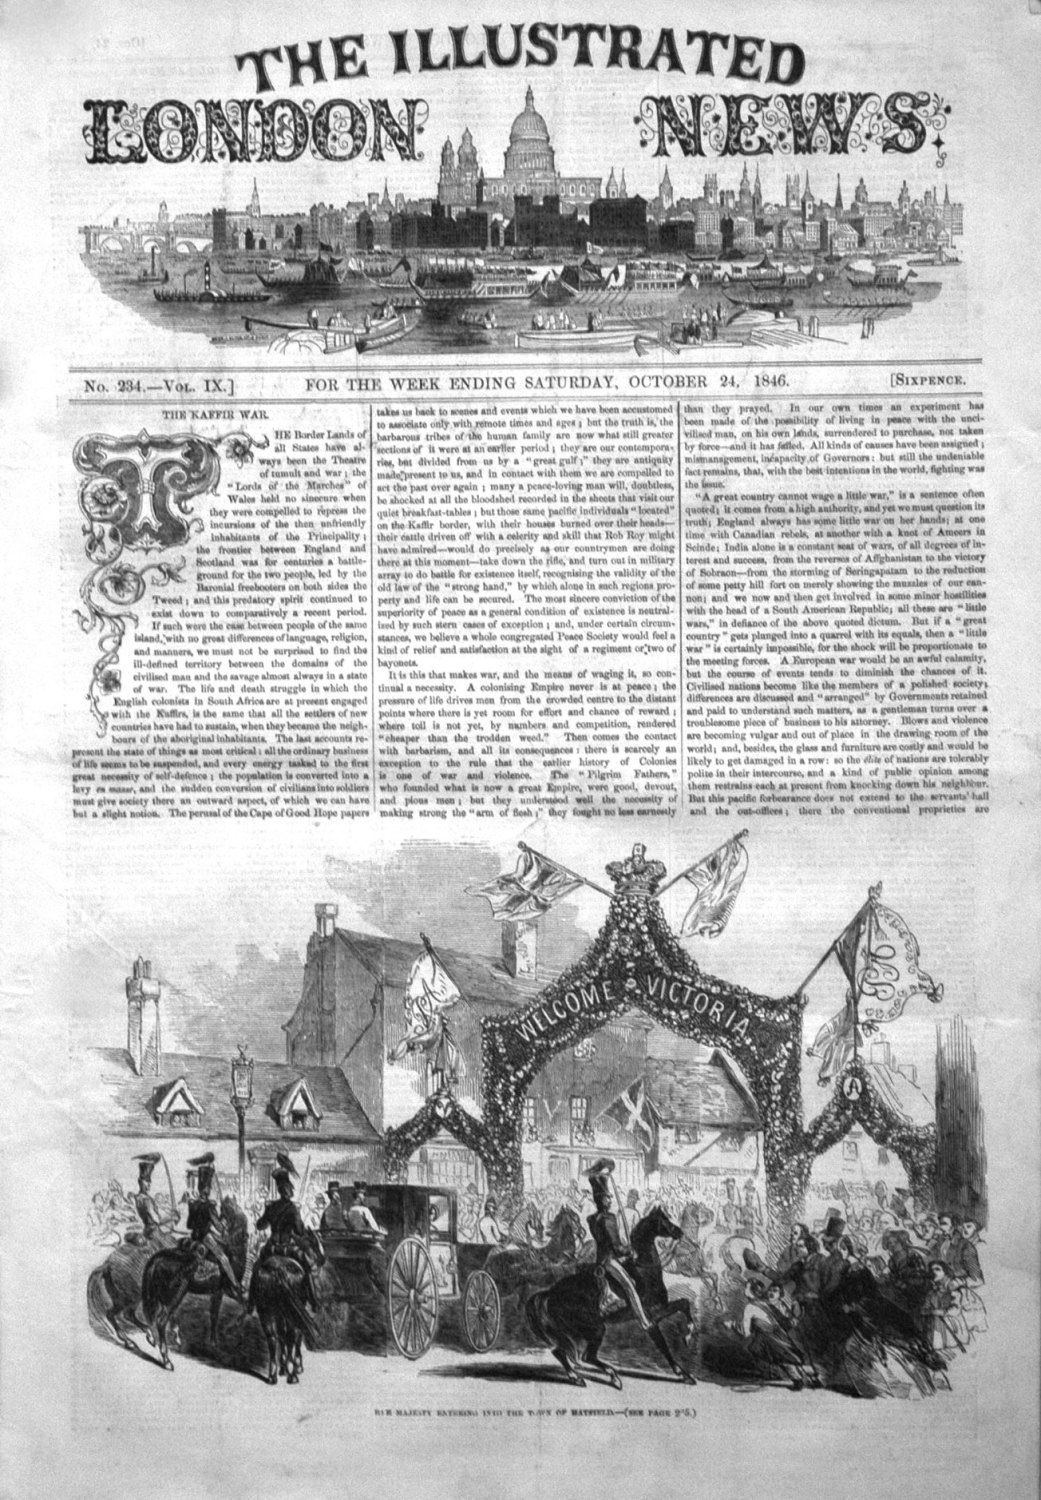 Illustrated London News October 24th 1846.